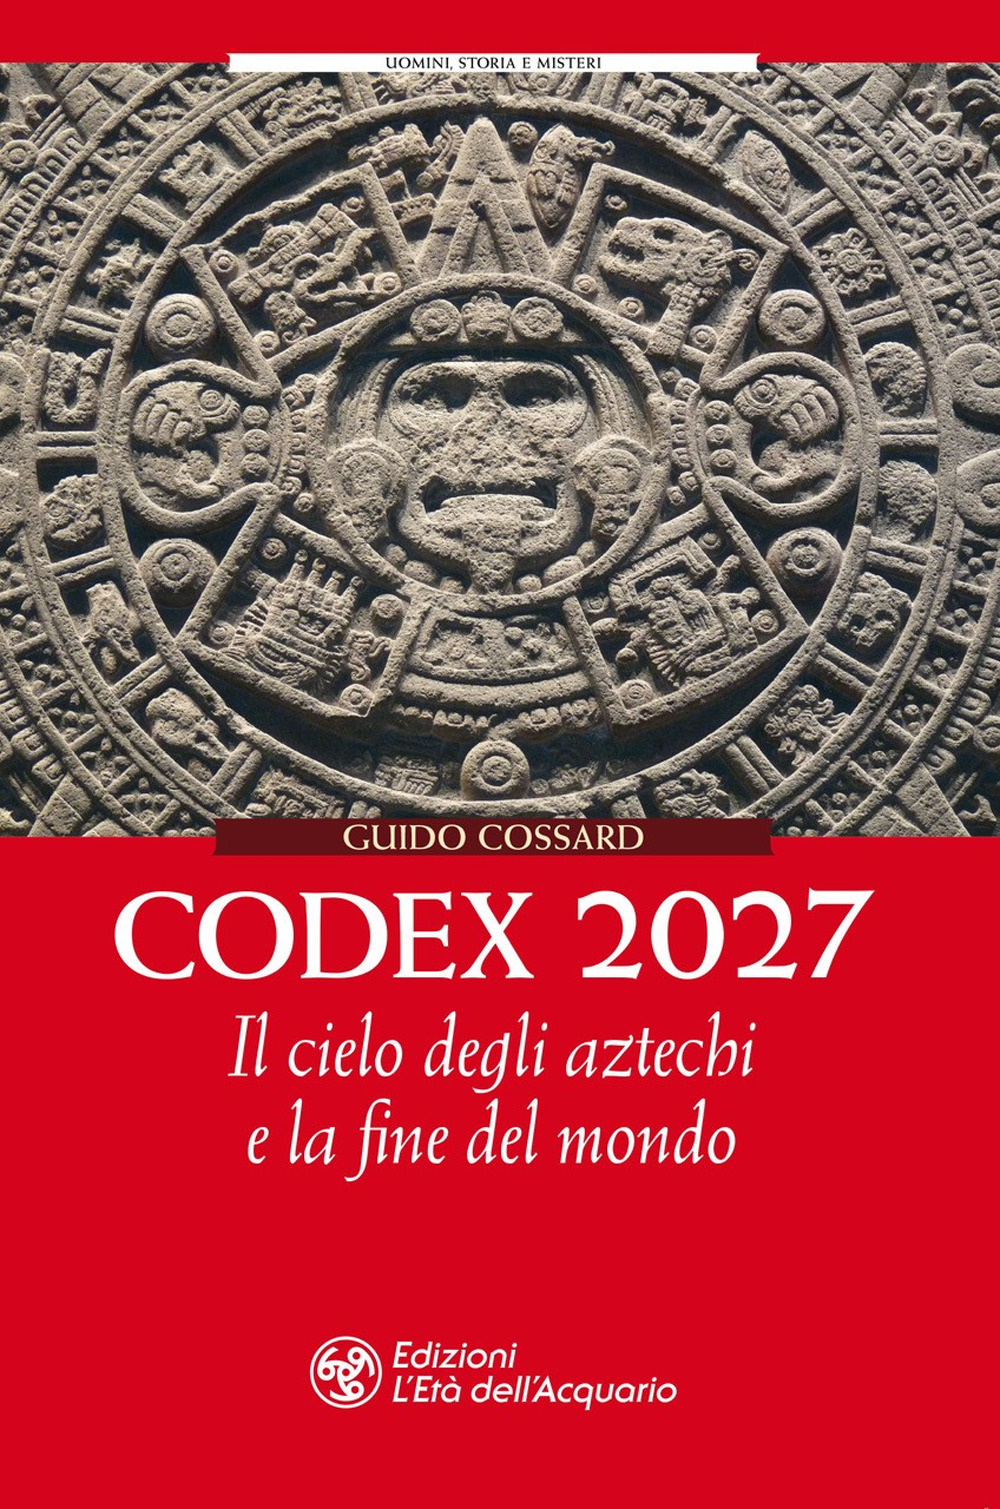 CODEX 2027 - Cossard Guido - 9788833361963